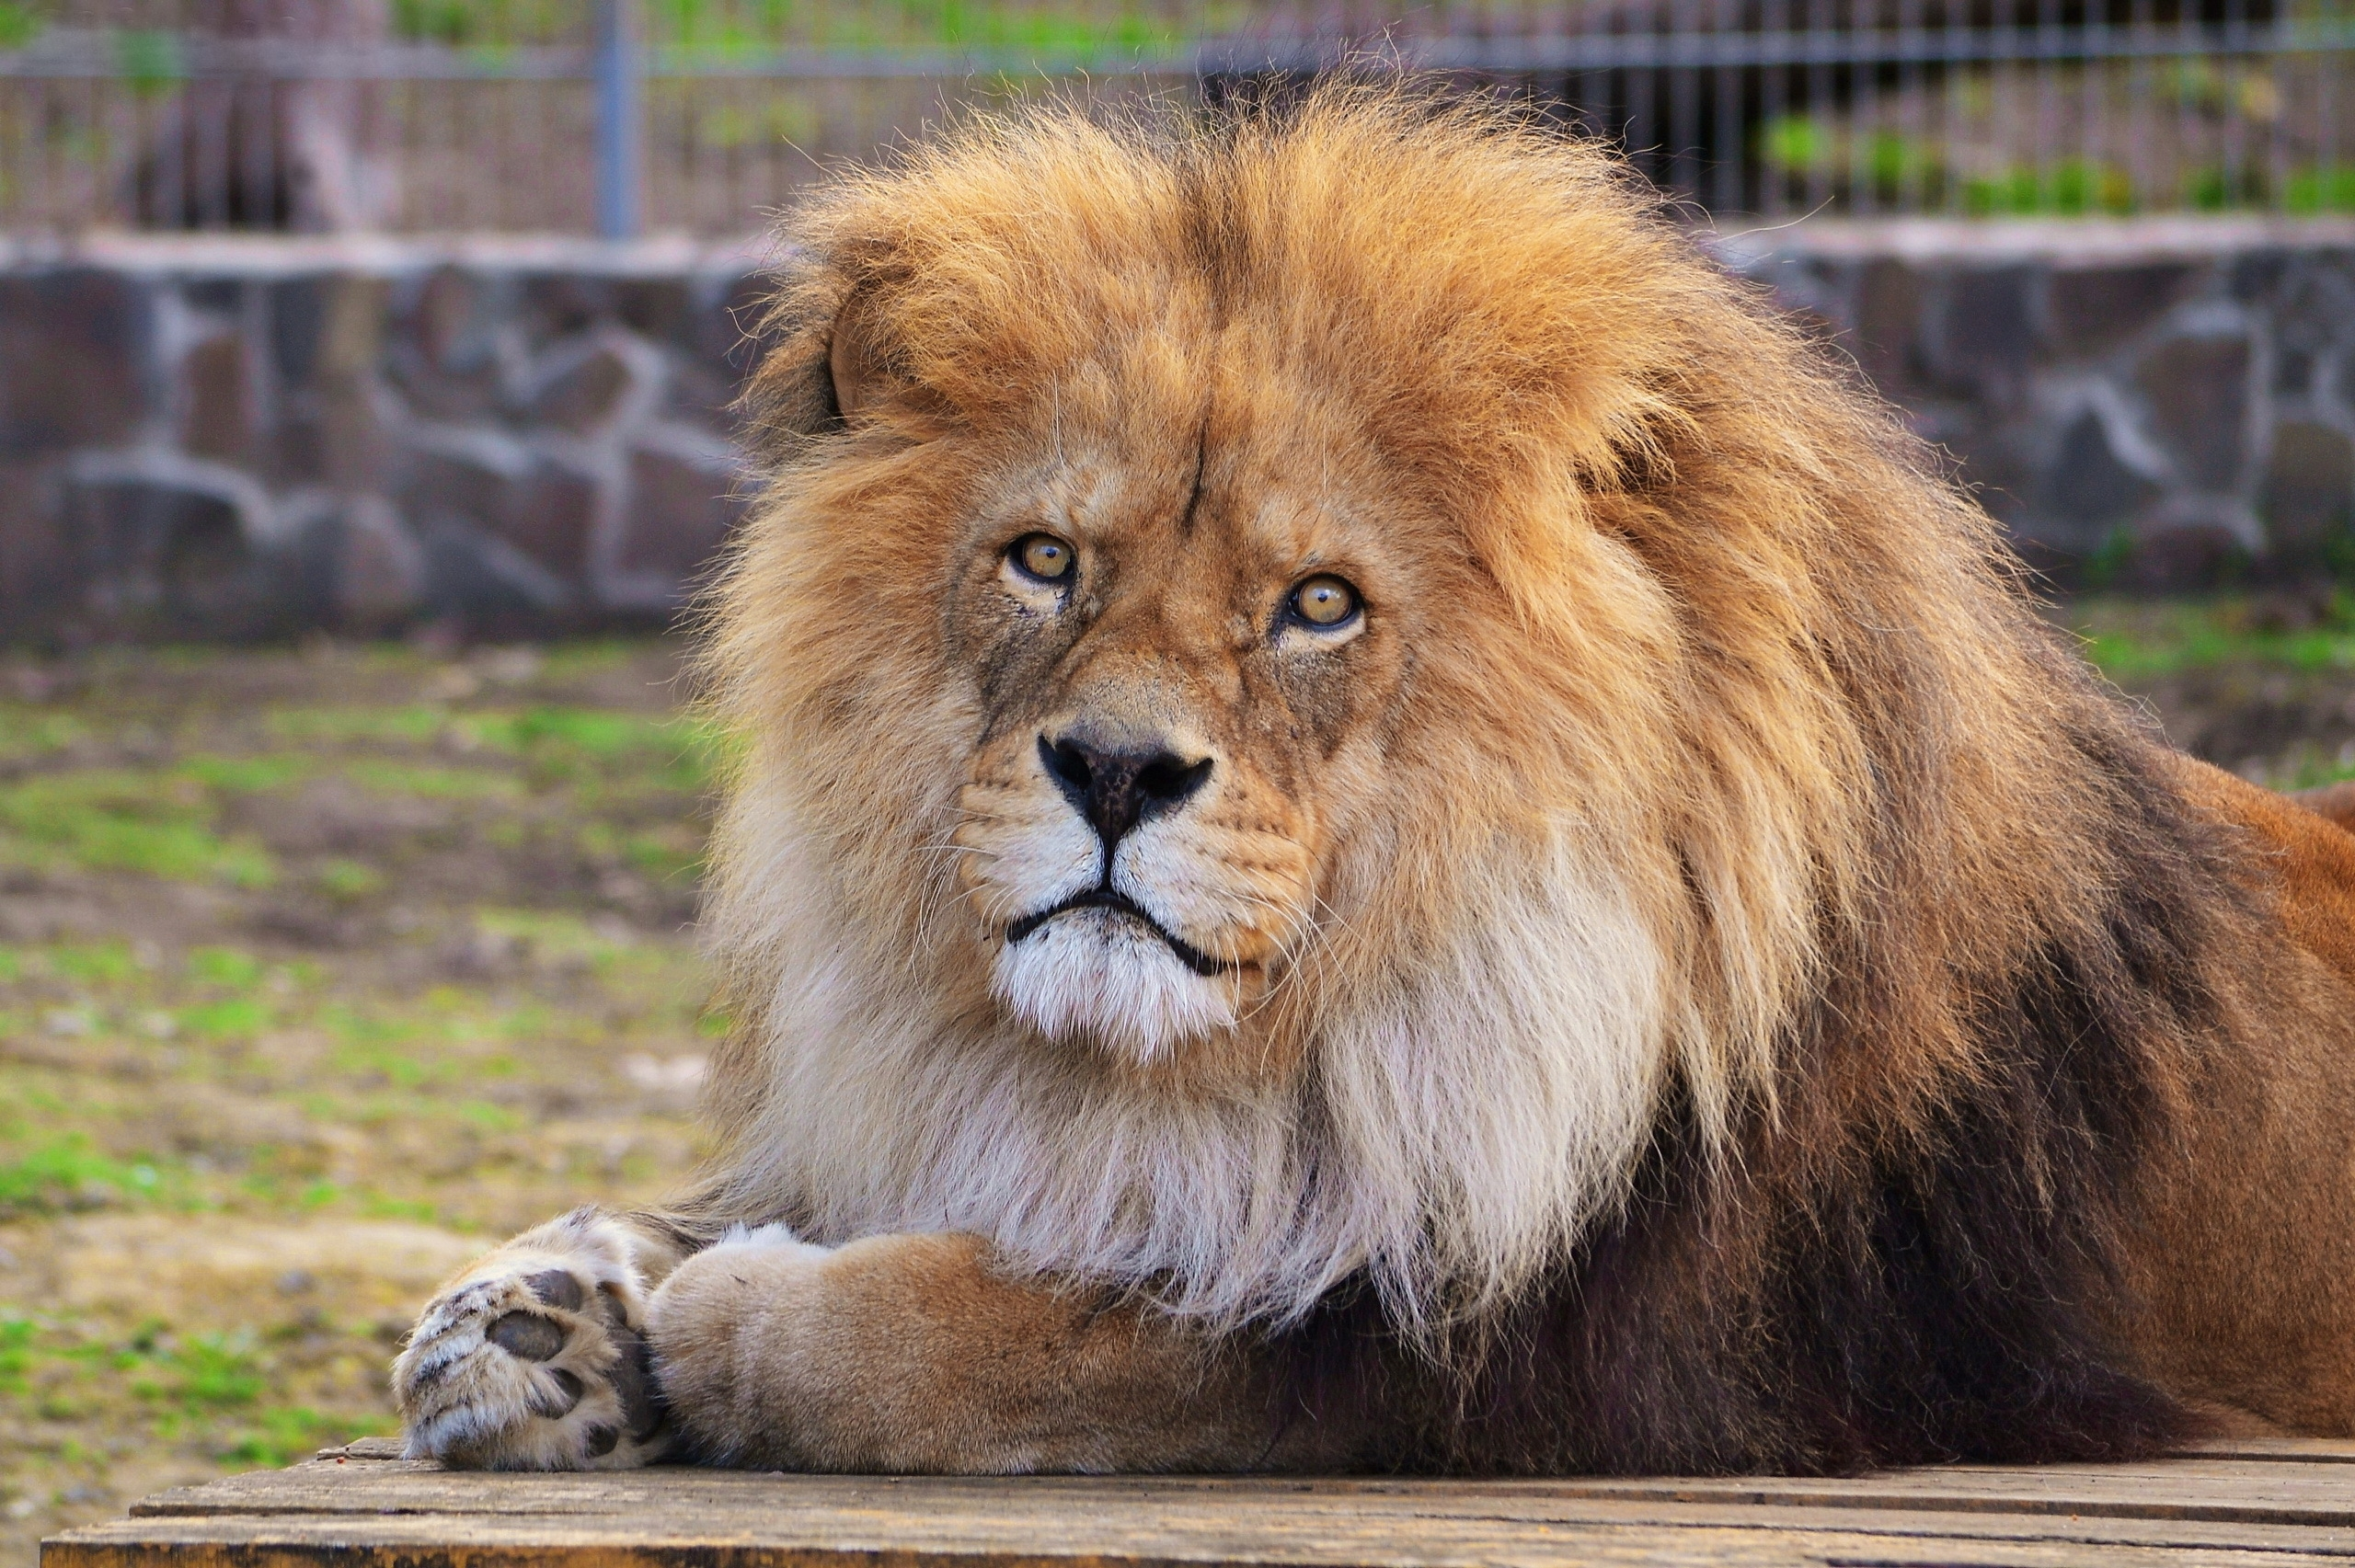 130389 download wallpaper Animals, Lion, Mane, Predator, To Lie Down, Lie screensavers and pictures for free